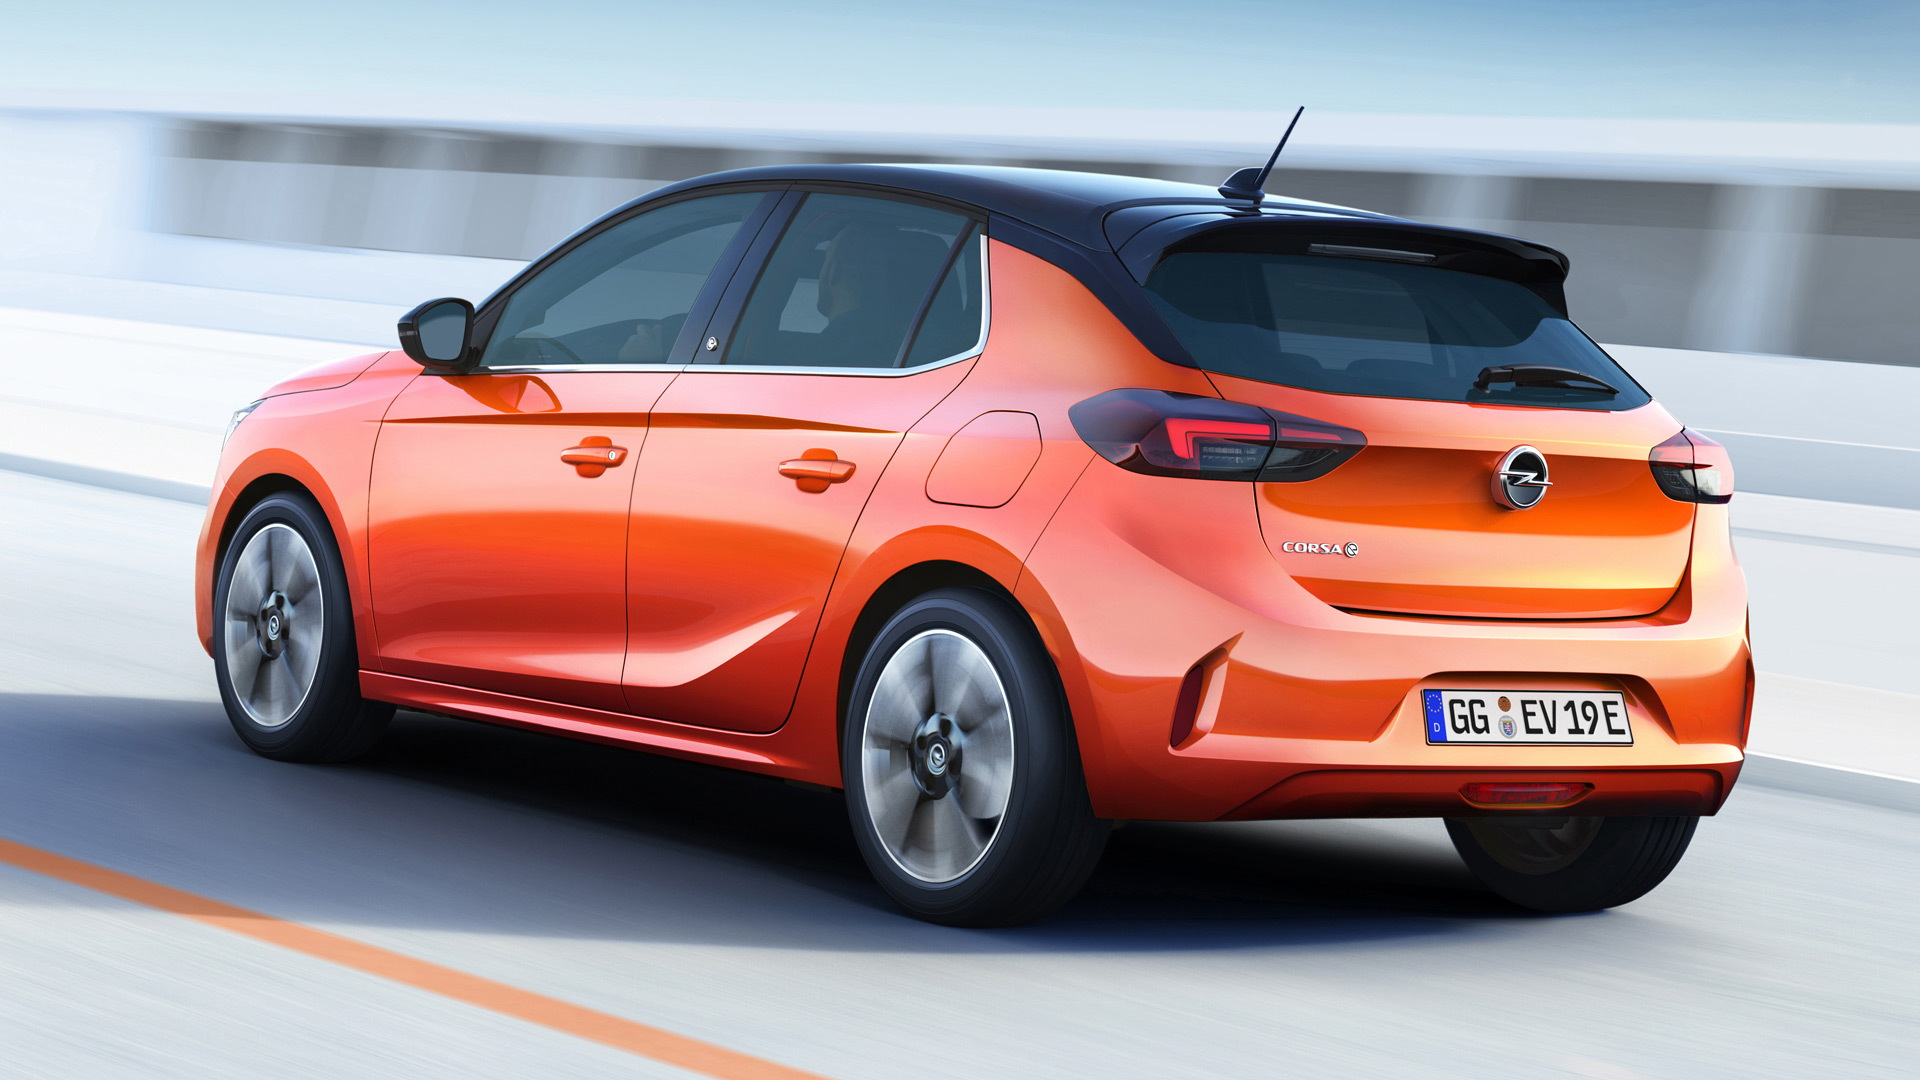 Corsa-e Electric Hatchback Is Part Of Opel's First Move